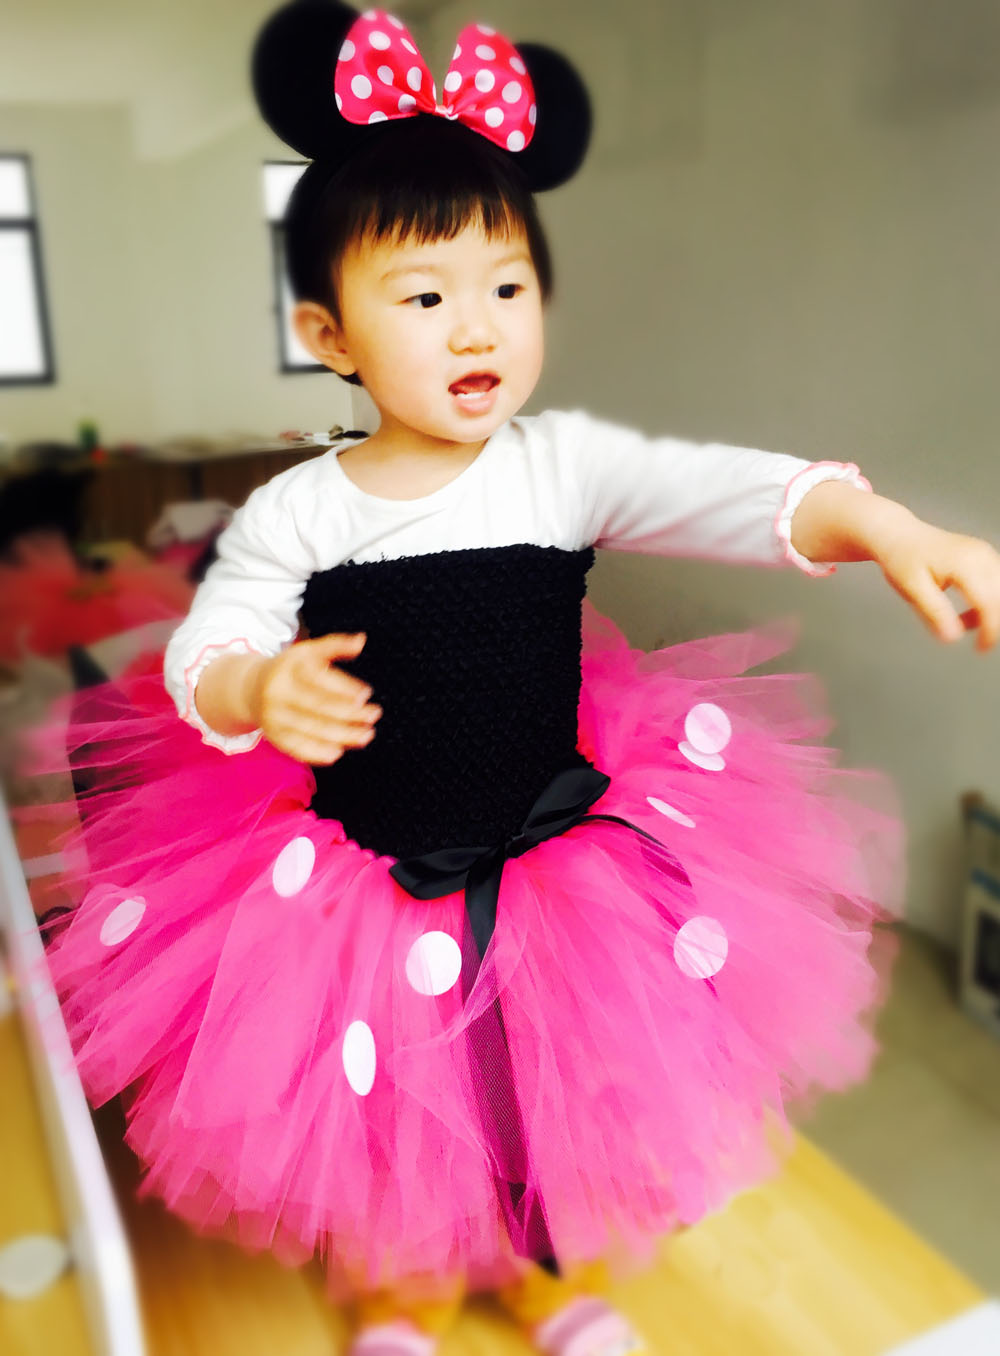 Black Top Rose Red Tulle Tutu Mini Mickey Dress with White Dots Knee Length Pettigirl Dress for Halloween Outfits Kids Clothes (10)